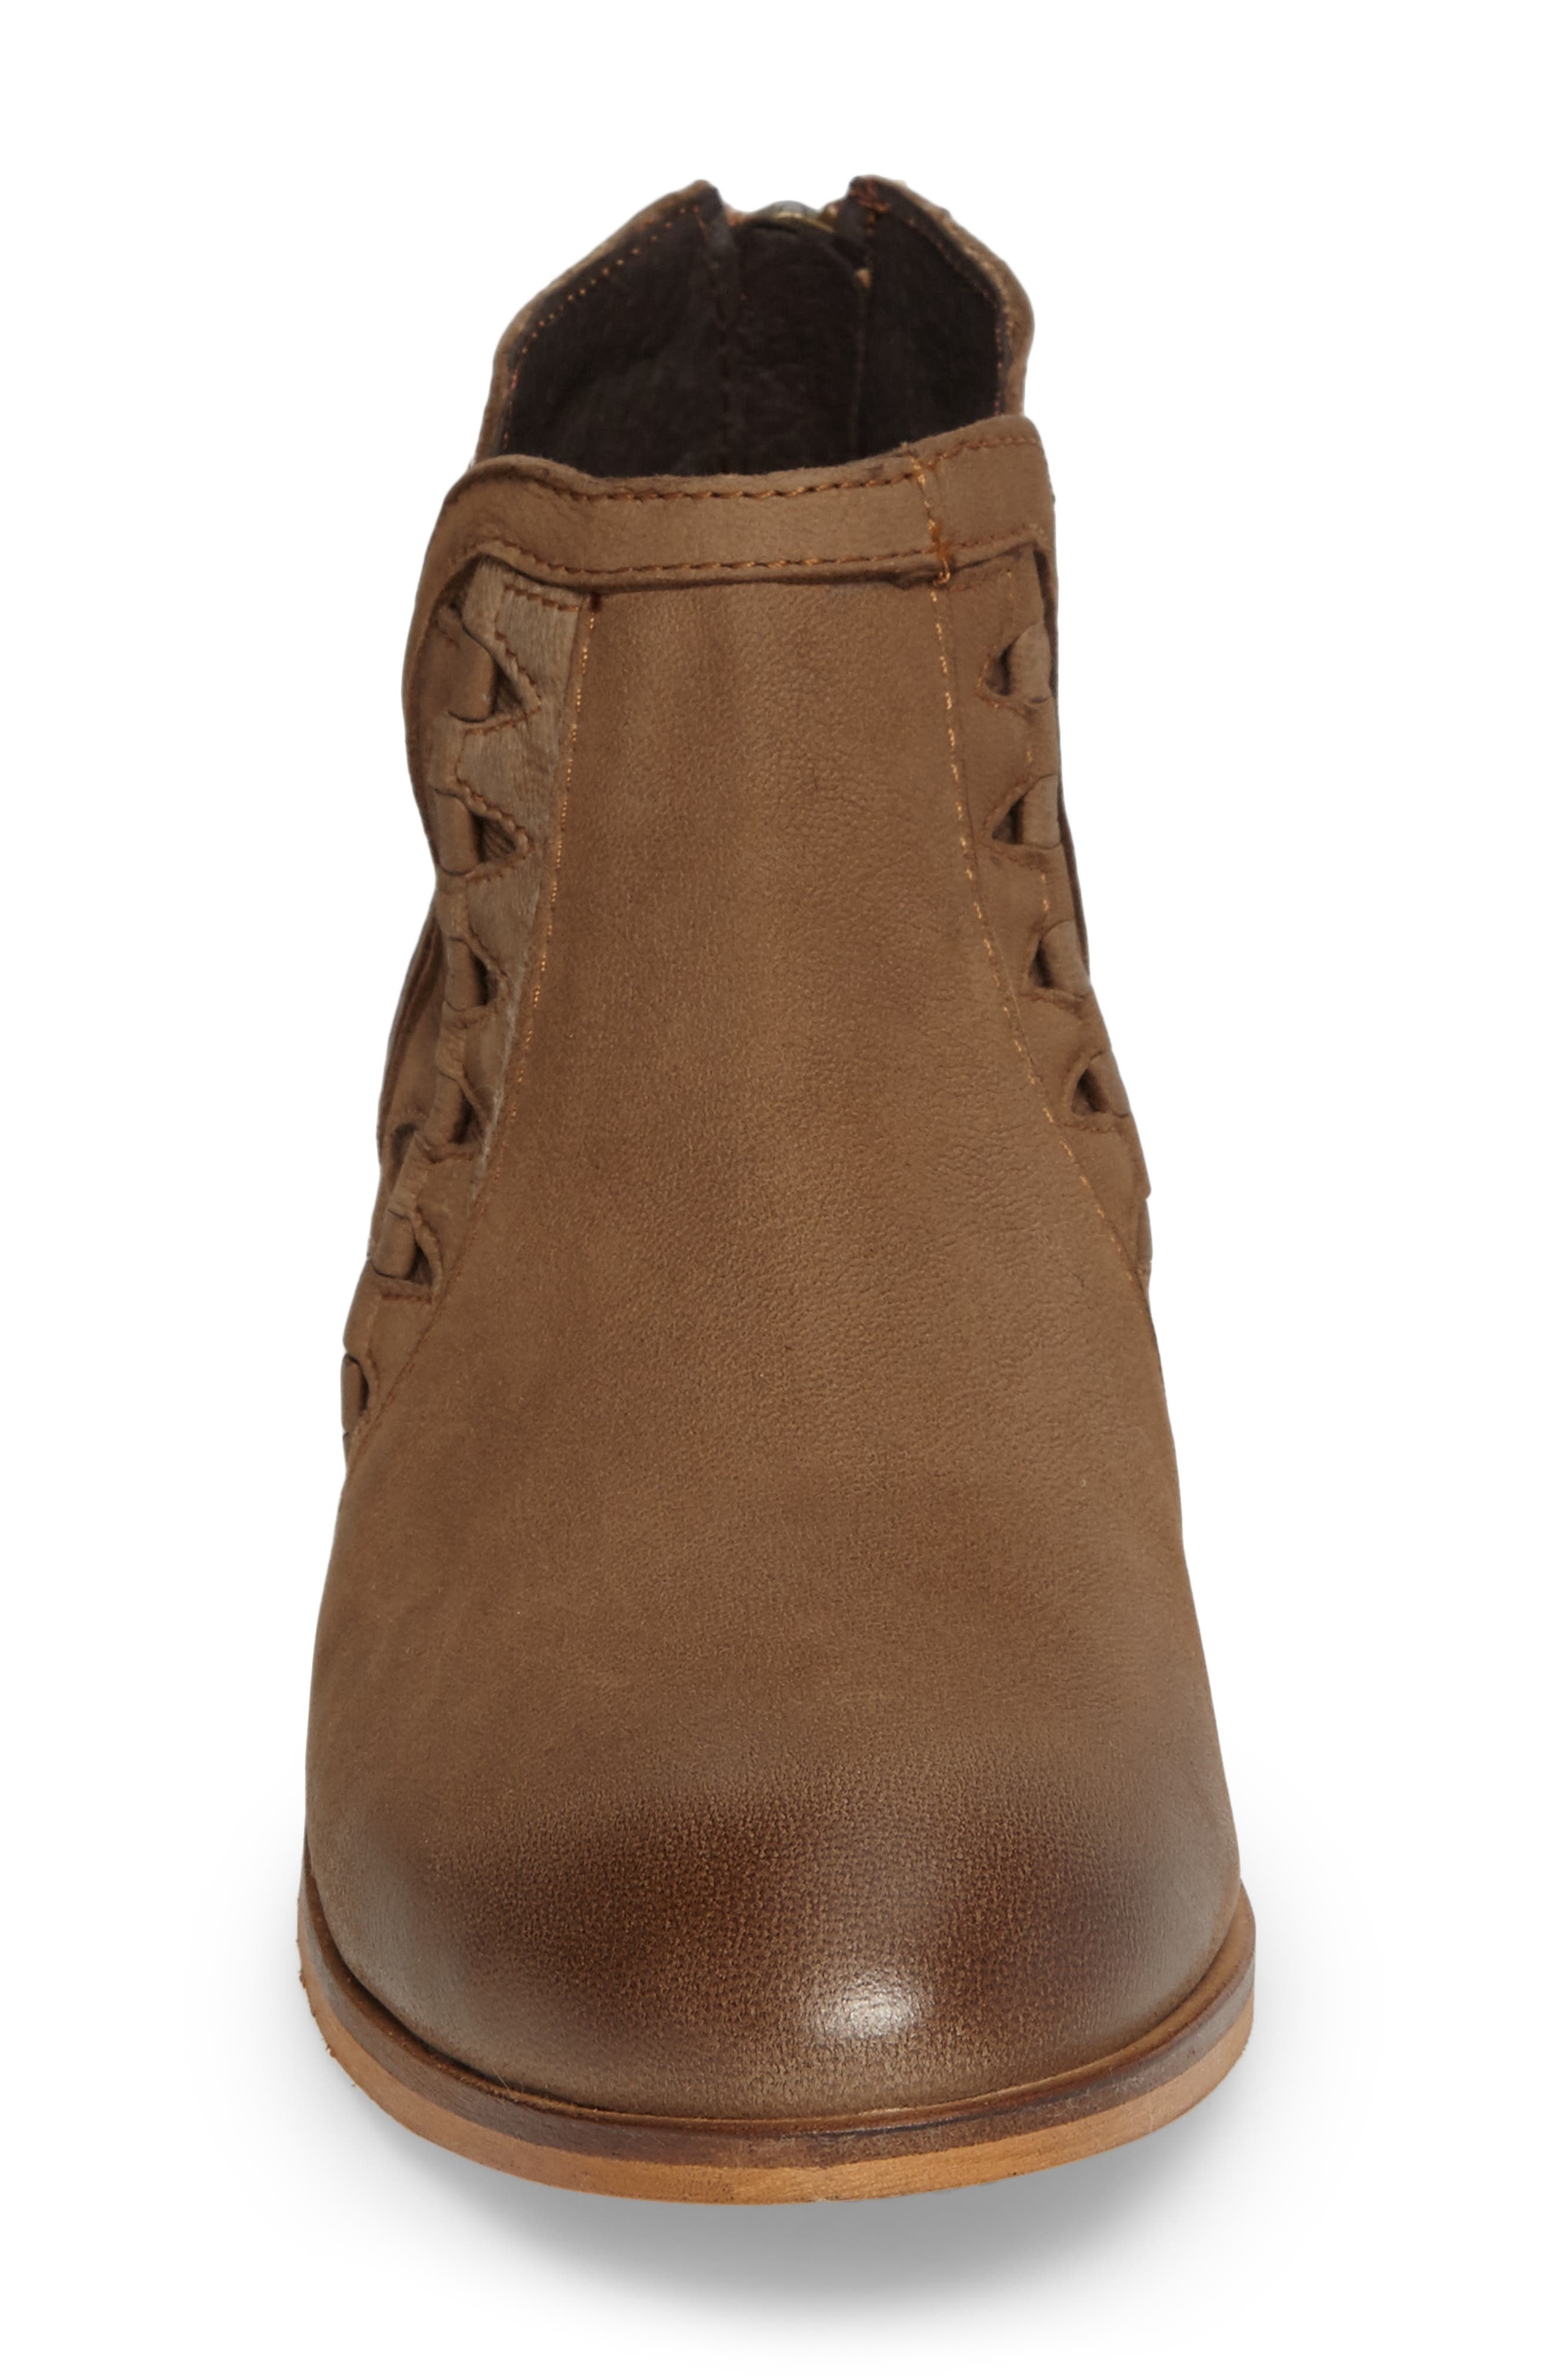 Yuma Bootie,                             Alternate thumbnail 4, color,                             Cognac Washed Nubuck Leather